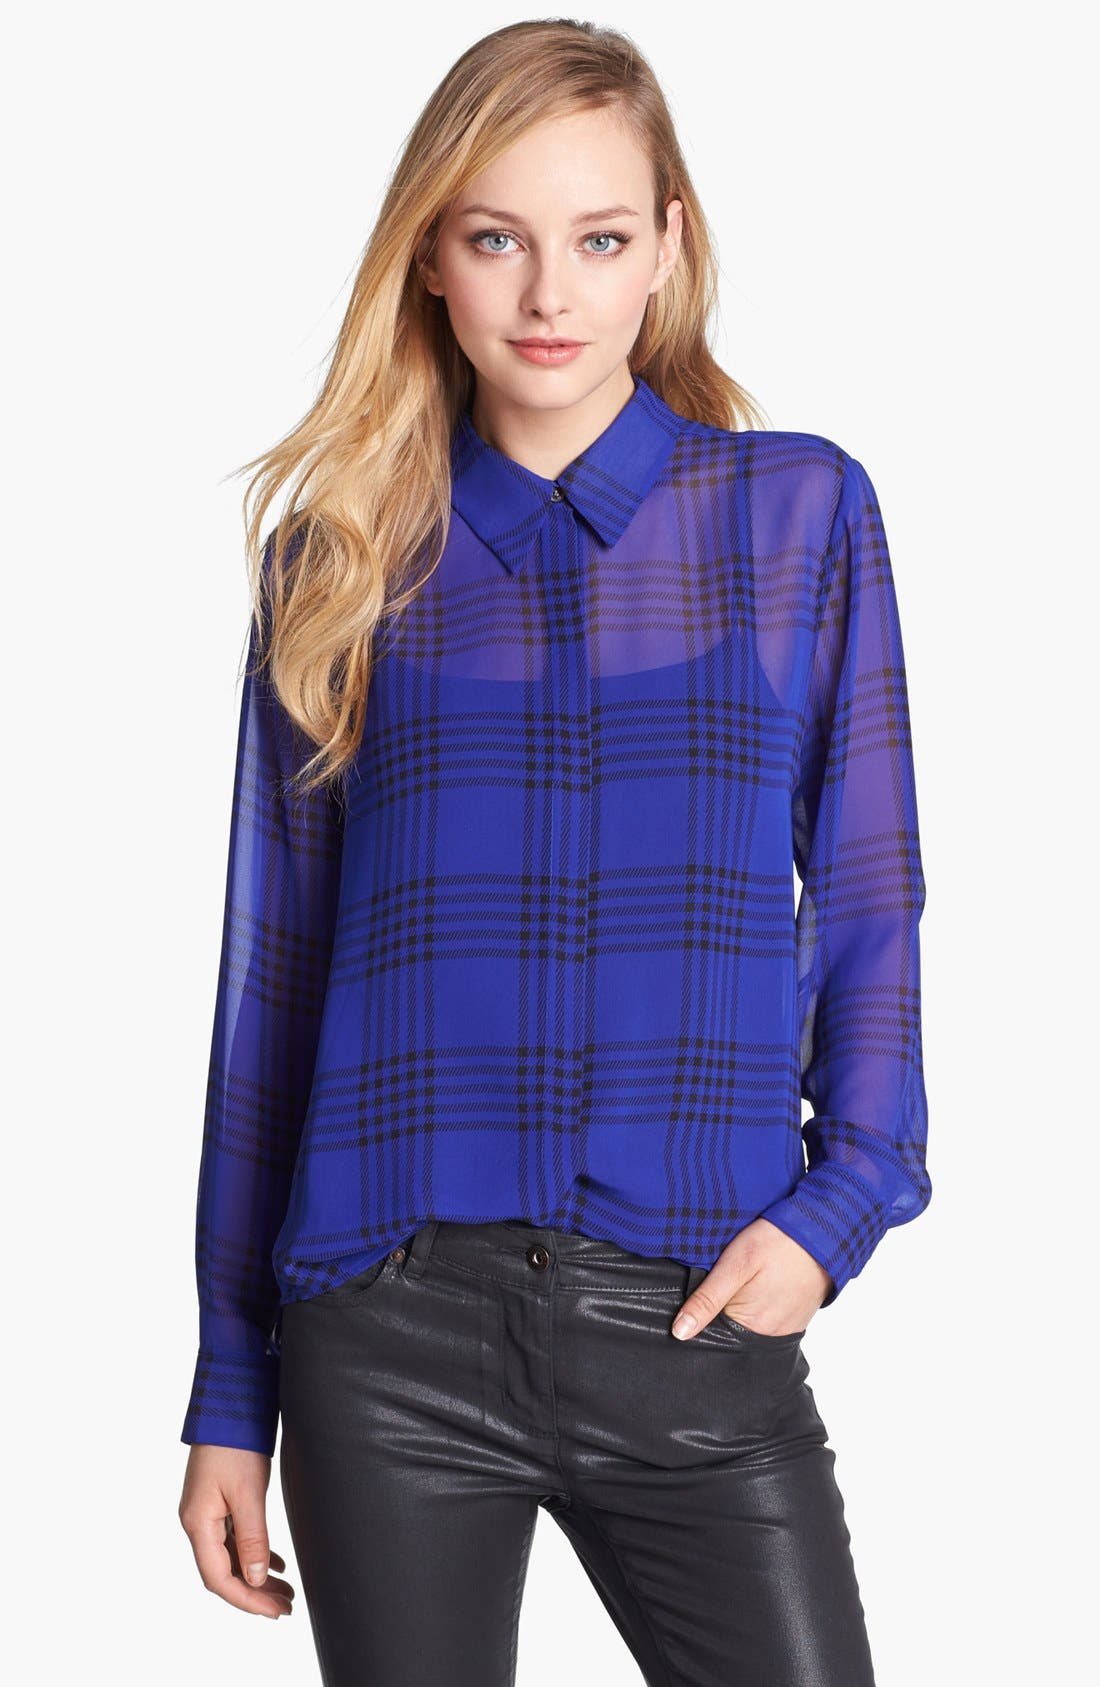 Alternate Image 1 Selected - Vince Camuto Plaid Chiffon Blouse (Online Only)